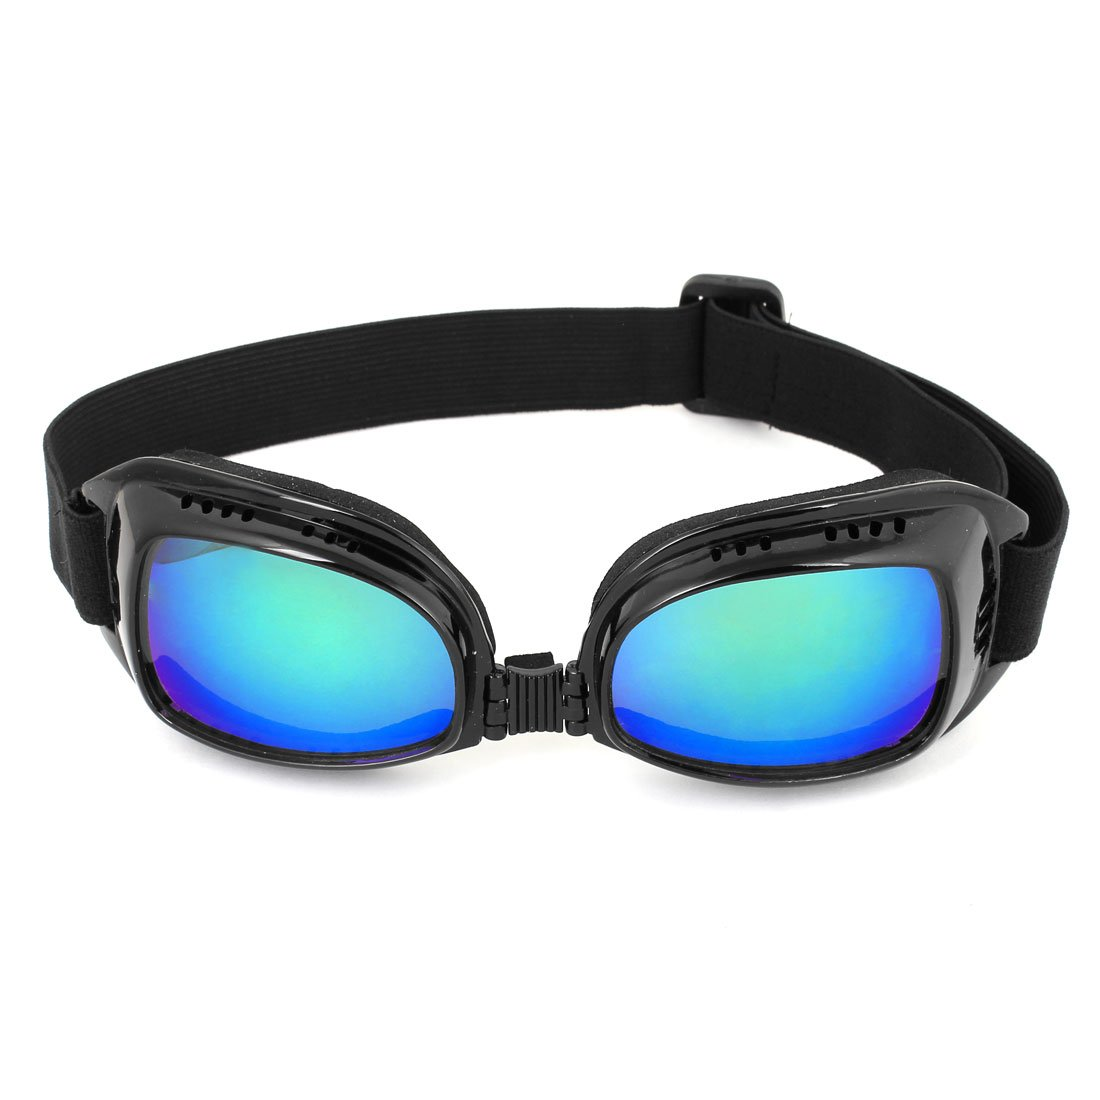 uxcell a14040700ux0714 Motorcycle Goggles Unknown